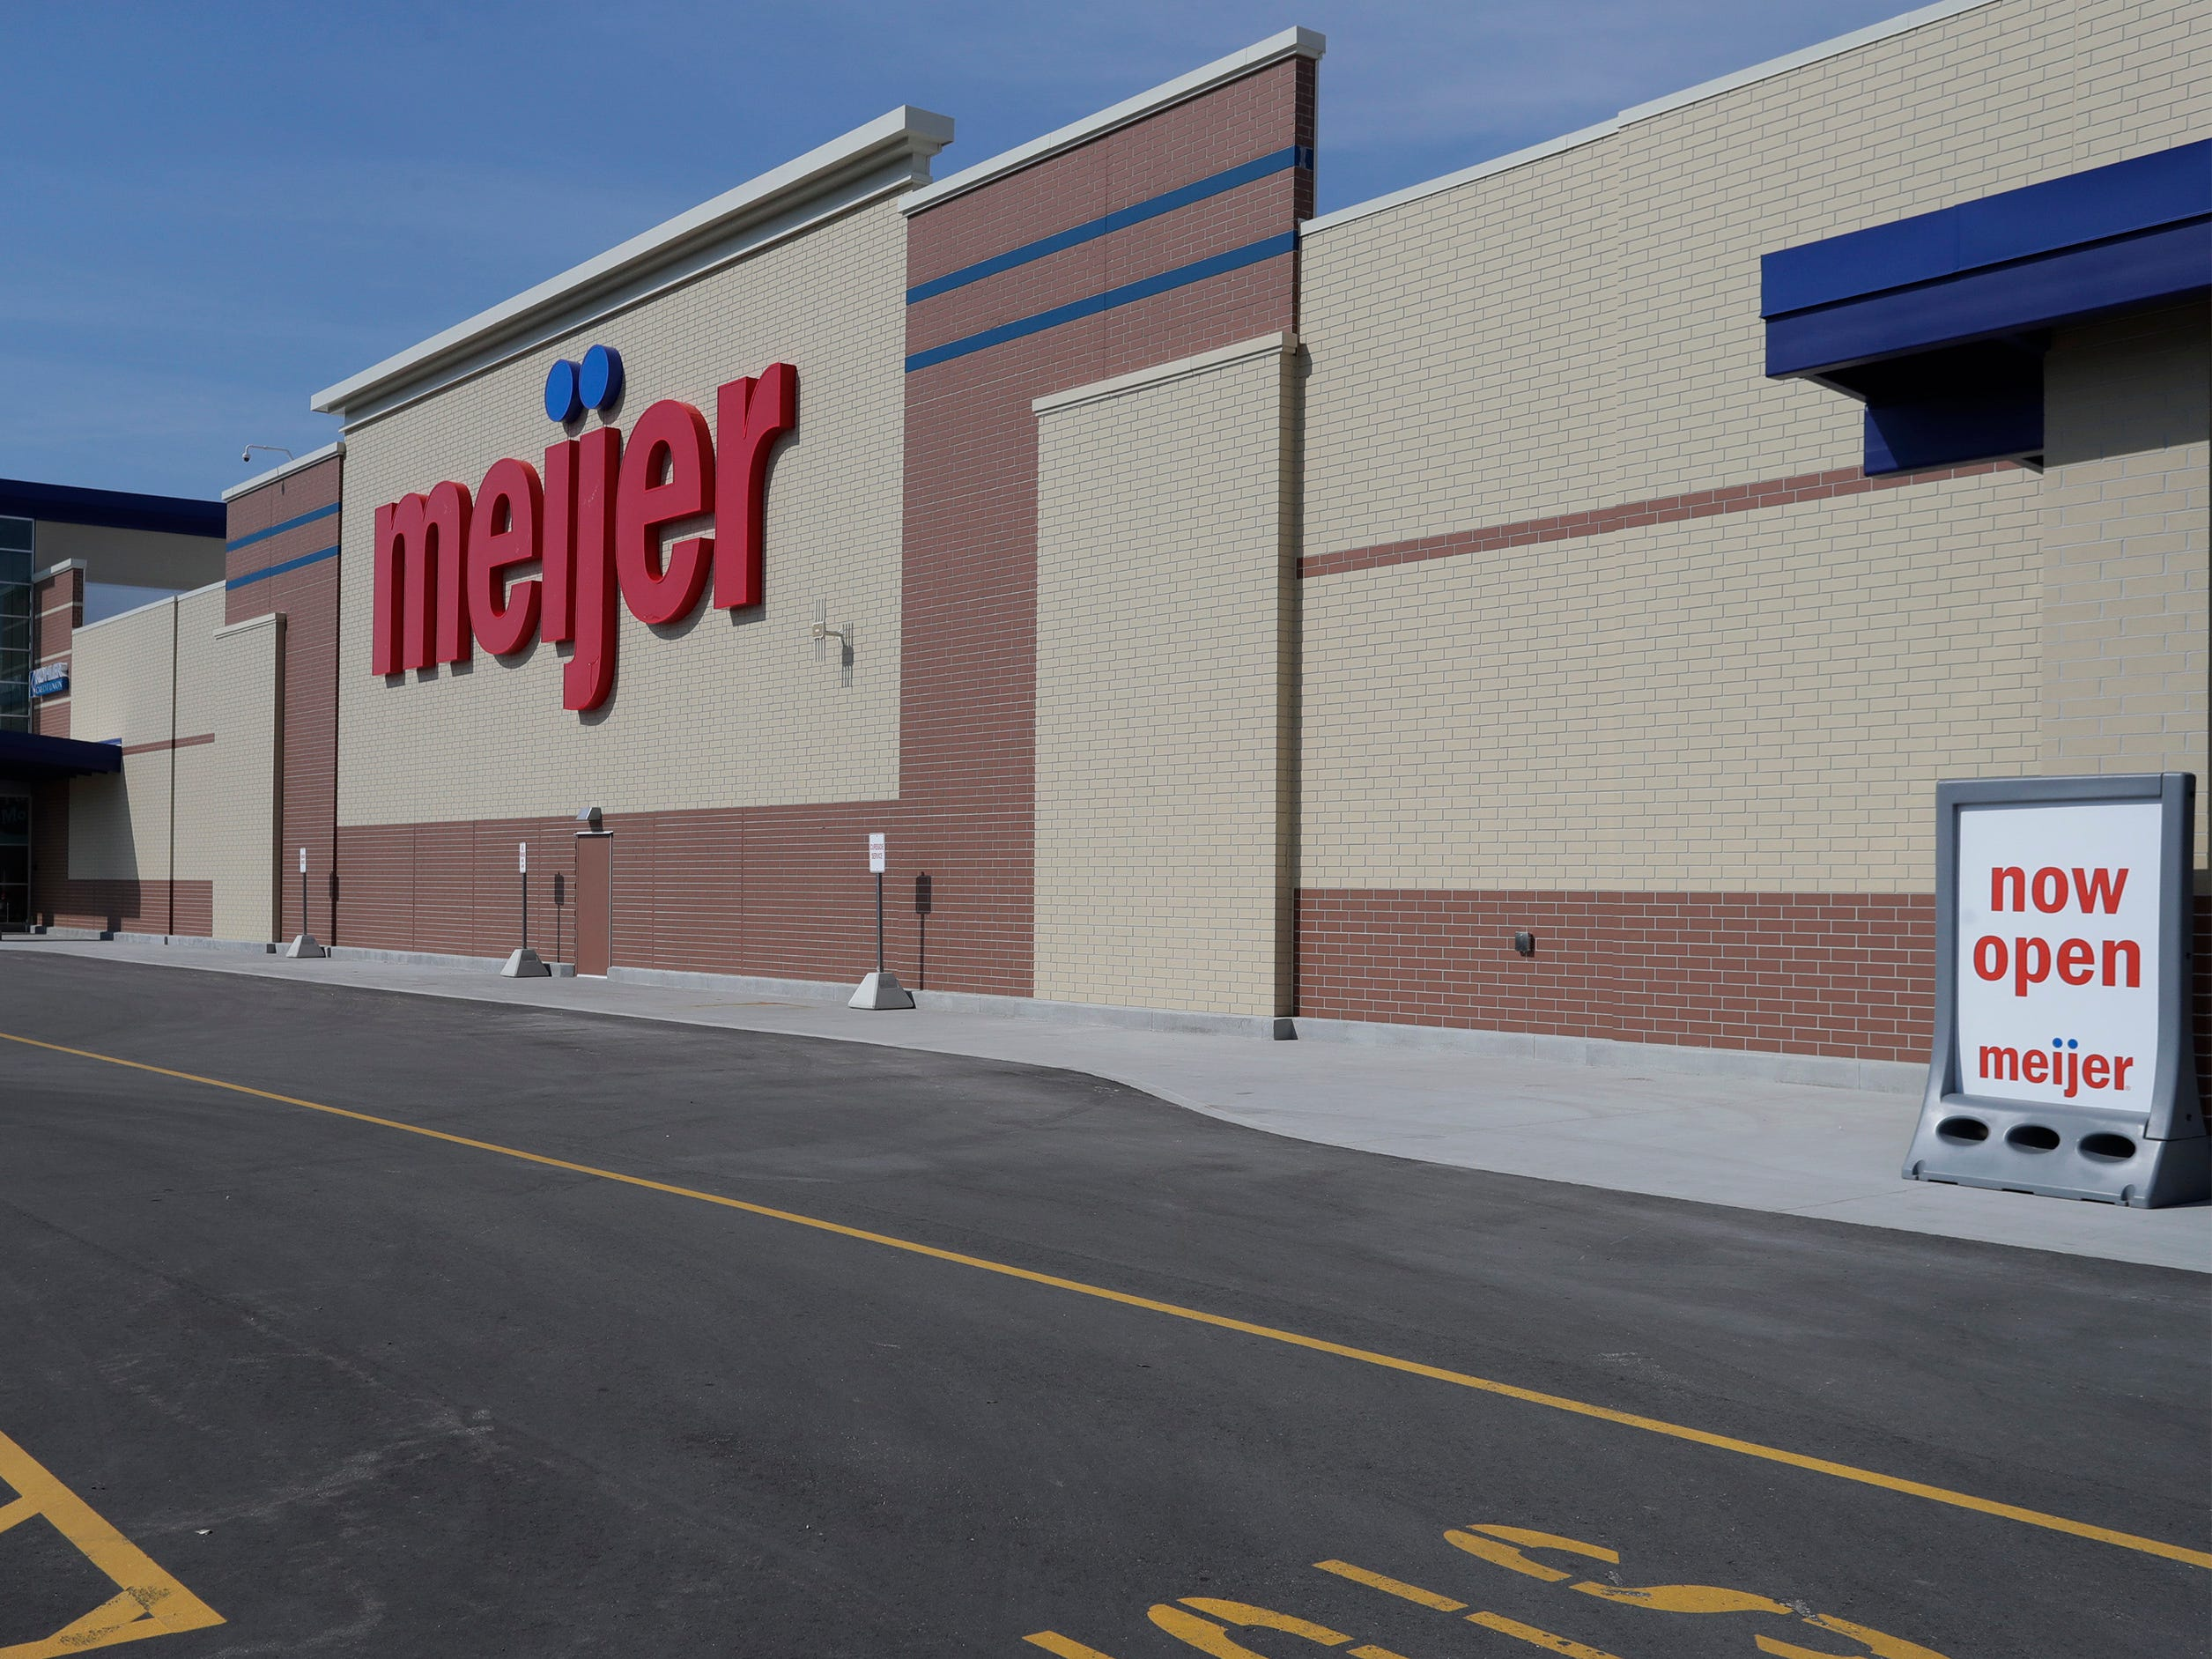 An exterior at Meijer, Thursday April 25, 2019, in Sheboygan, Wis. The 155,000-square-foot supercenter has 300 employees on opening day.